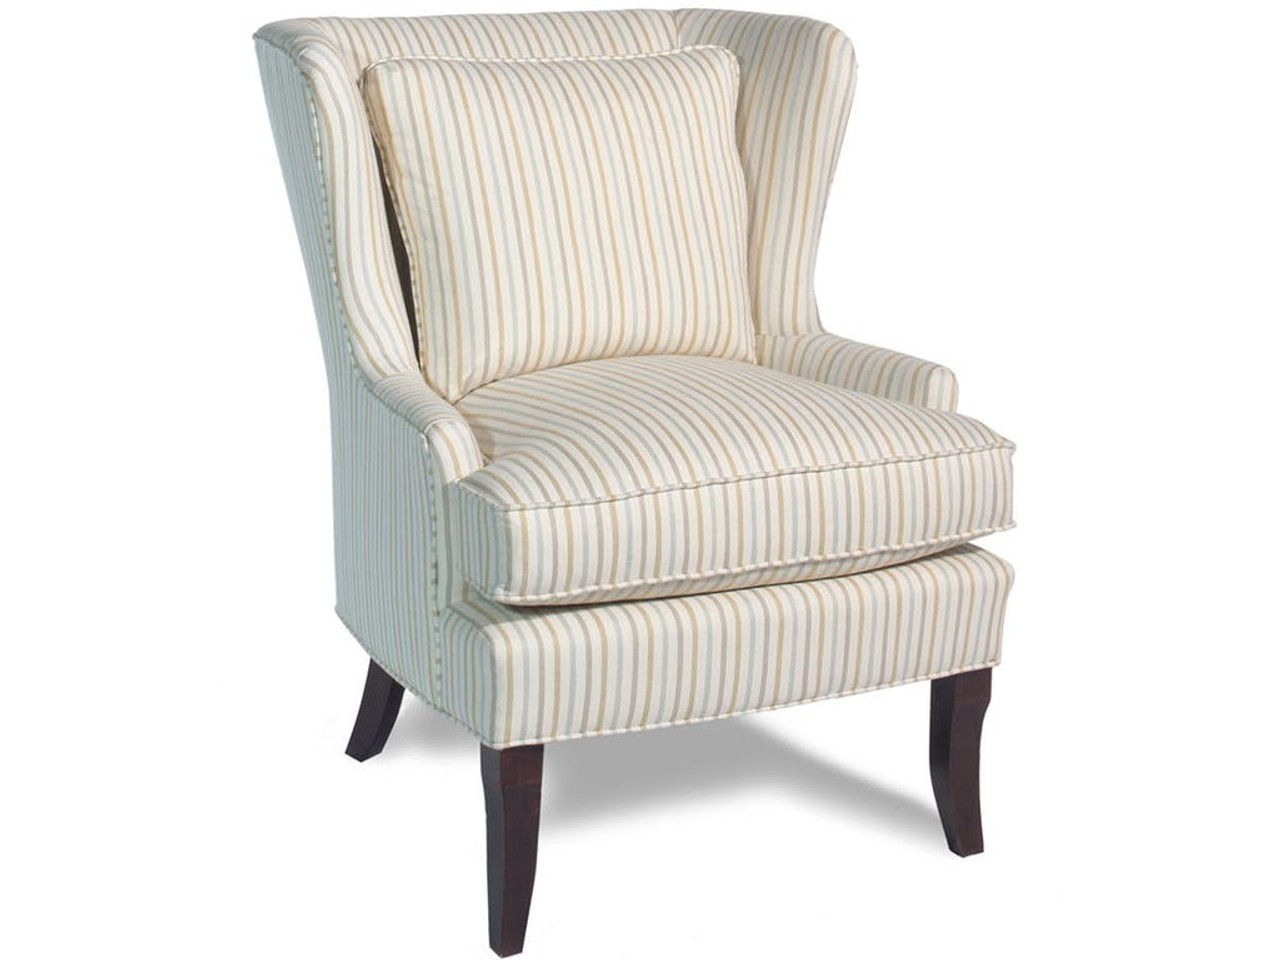 Buy The Paula Deen by Craftmaster Model P085010BD Chair on ...